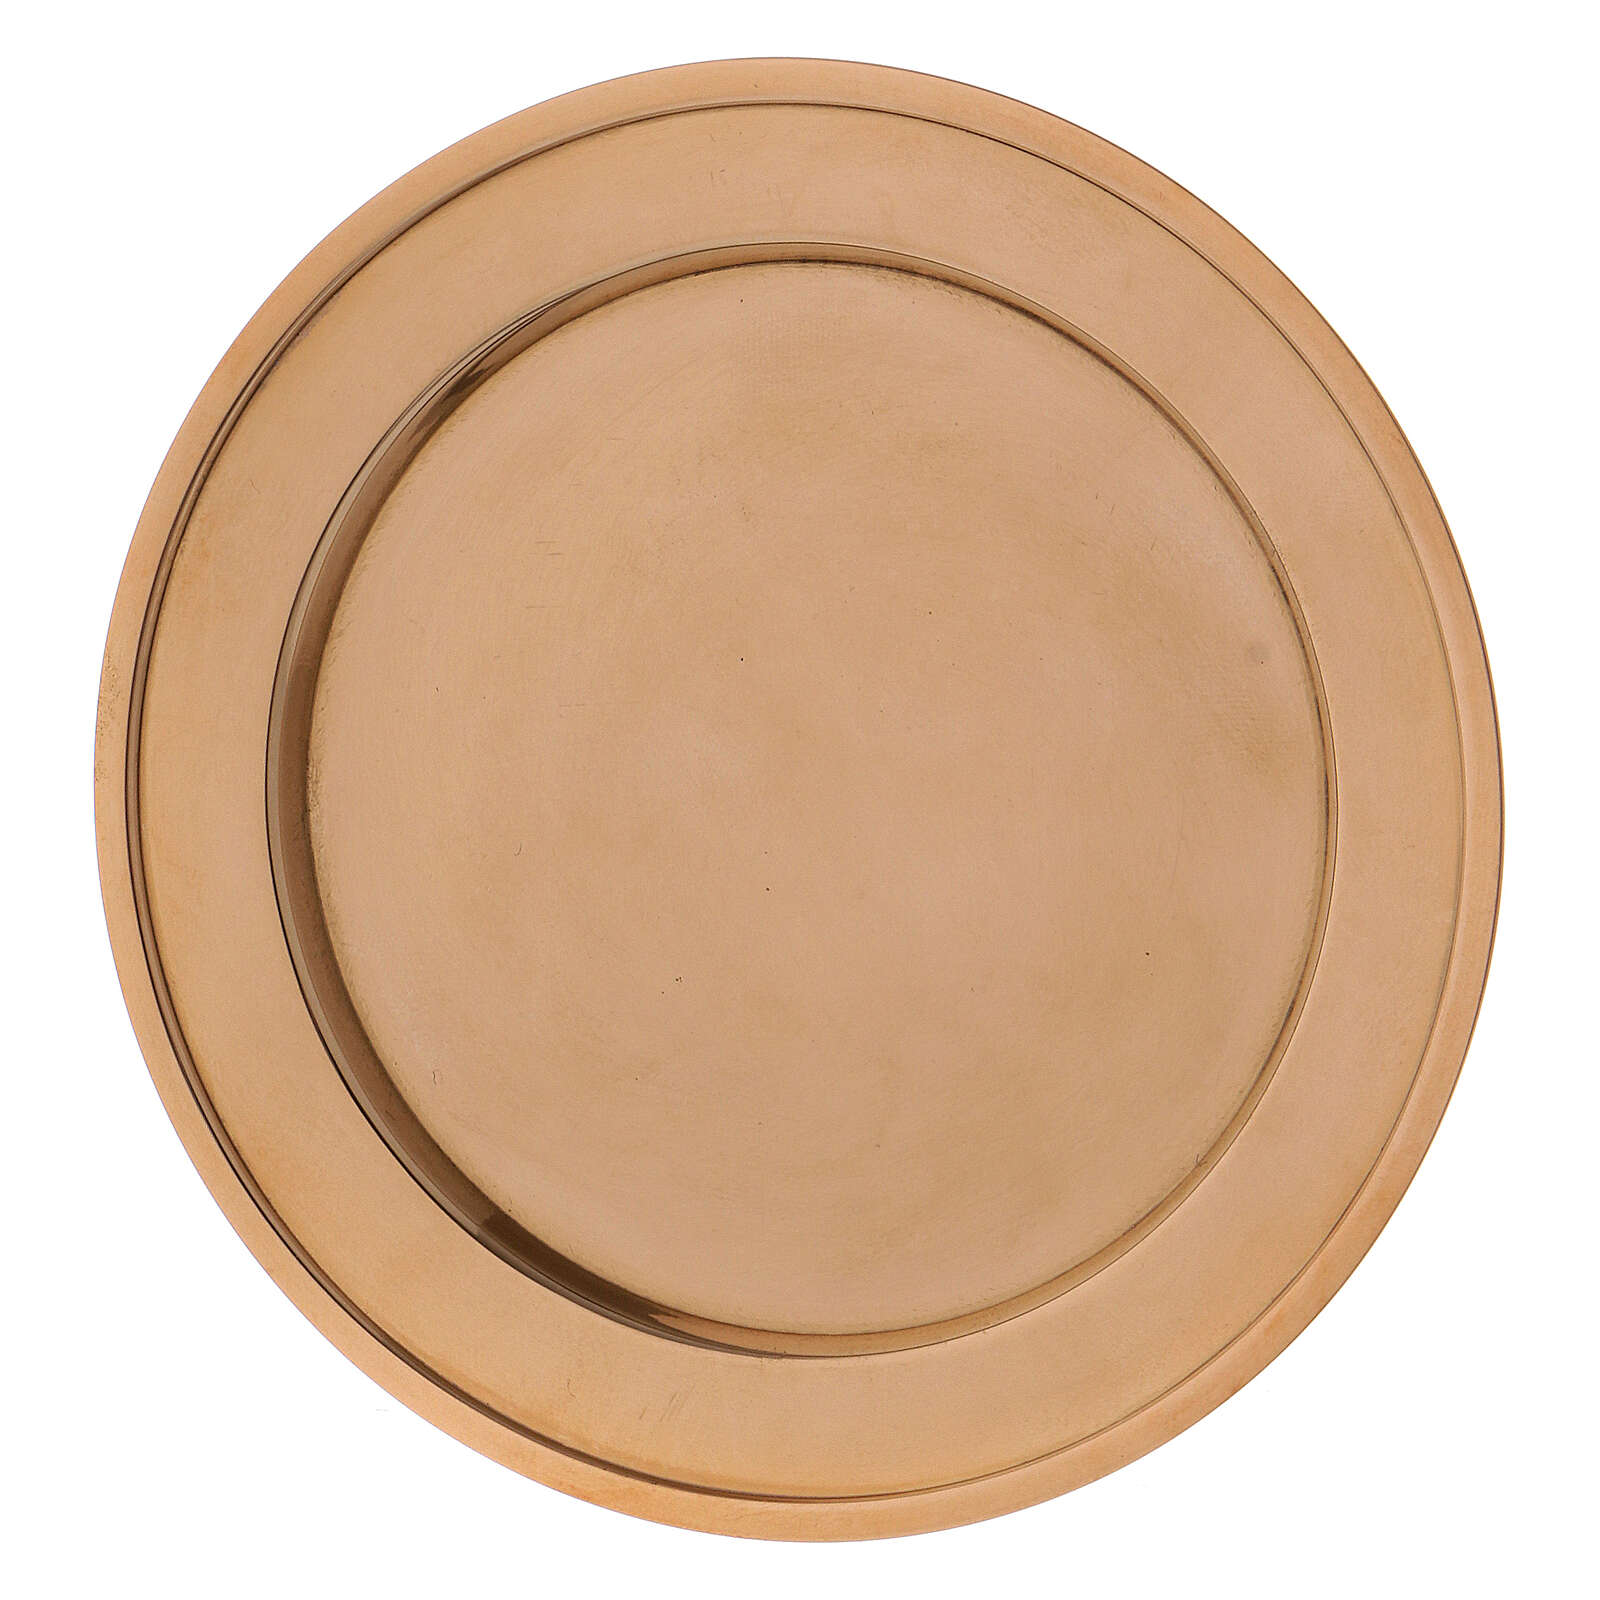 Candle holder plate in gold plated brass 3